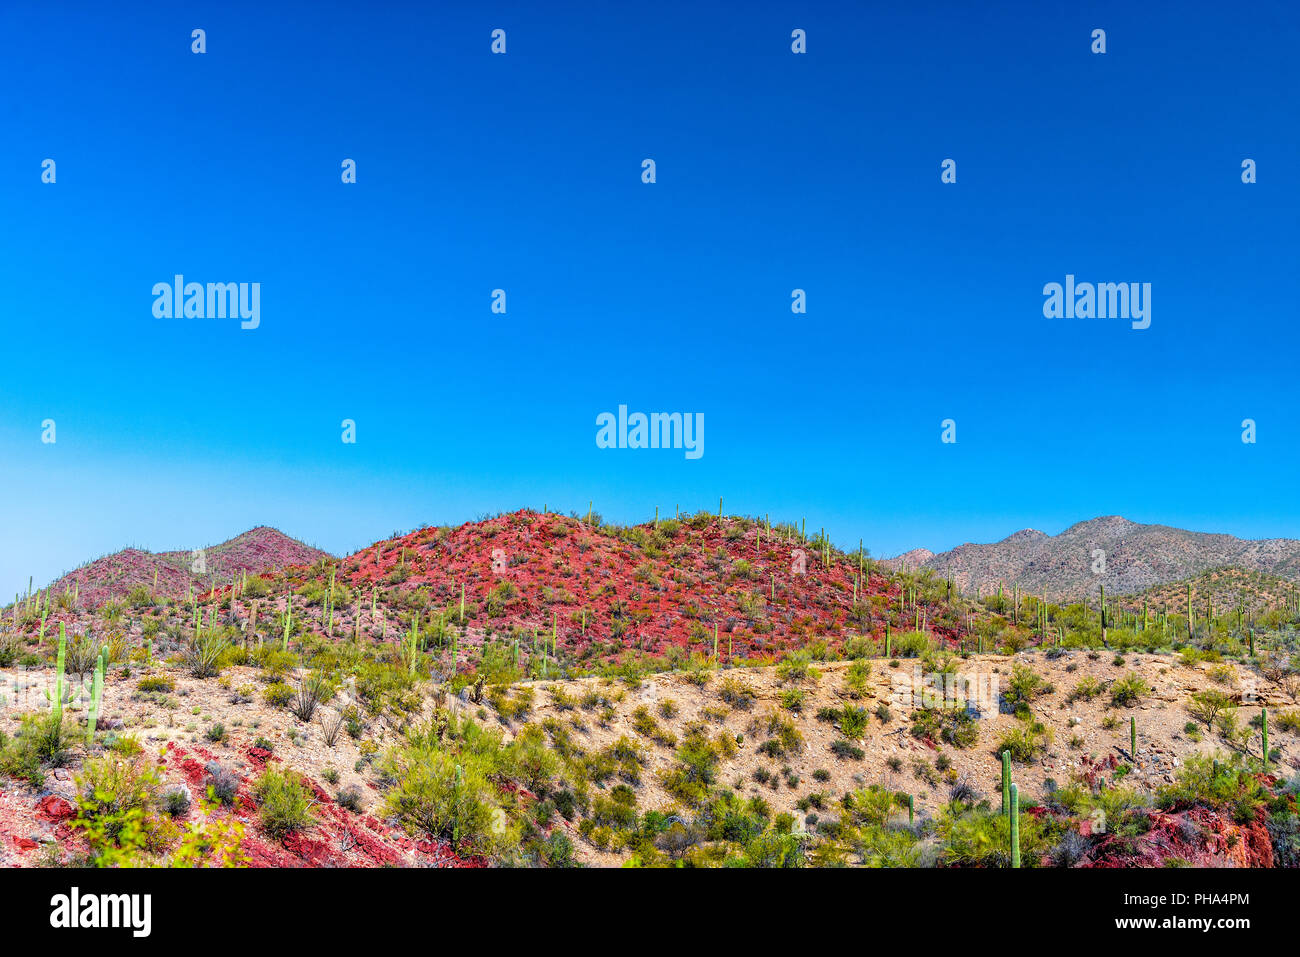 Colorful Southwestern desert with red hills under a blue sky. - Stock Image